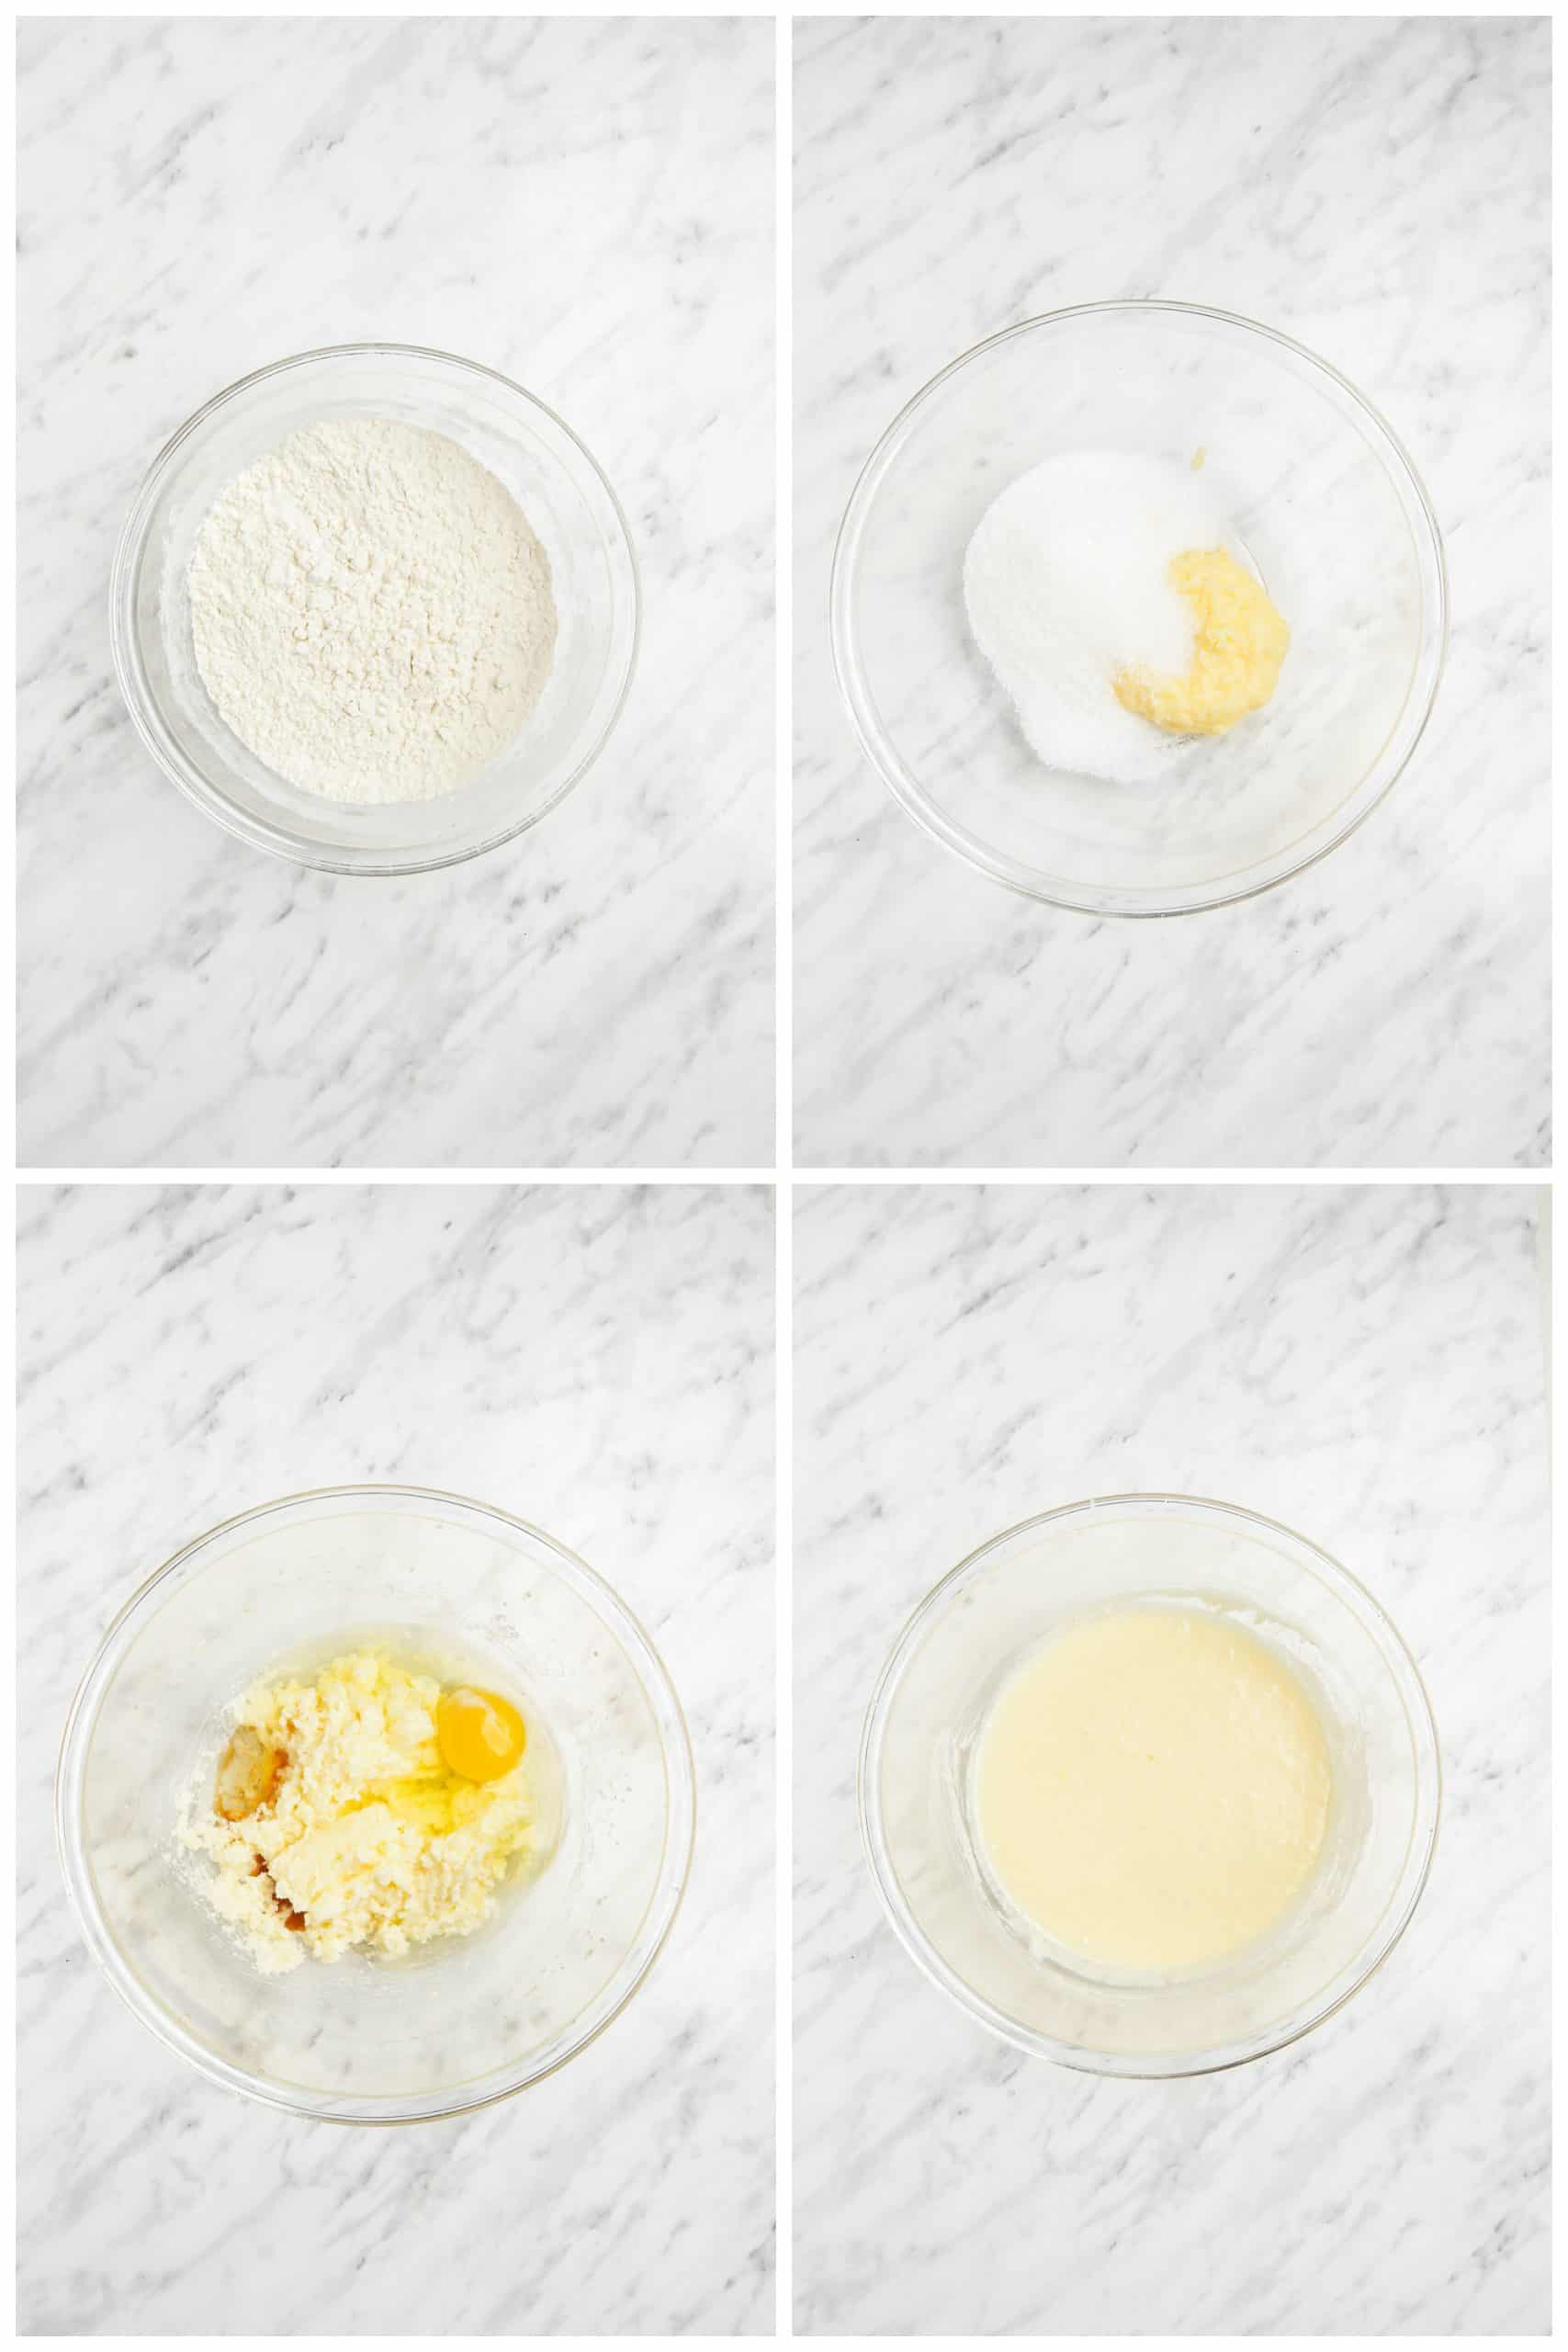 frosted sugar cookie bar step by step photos of making batter